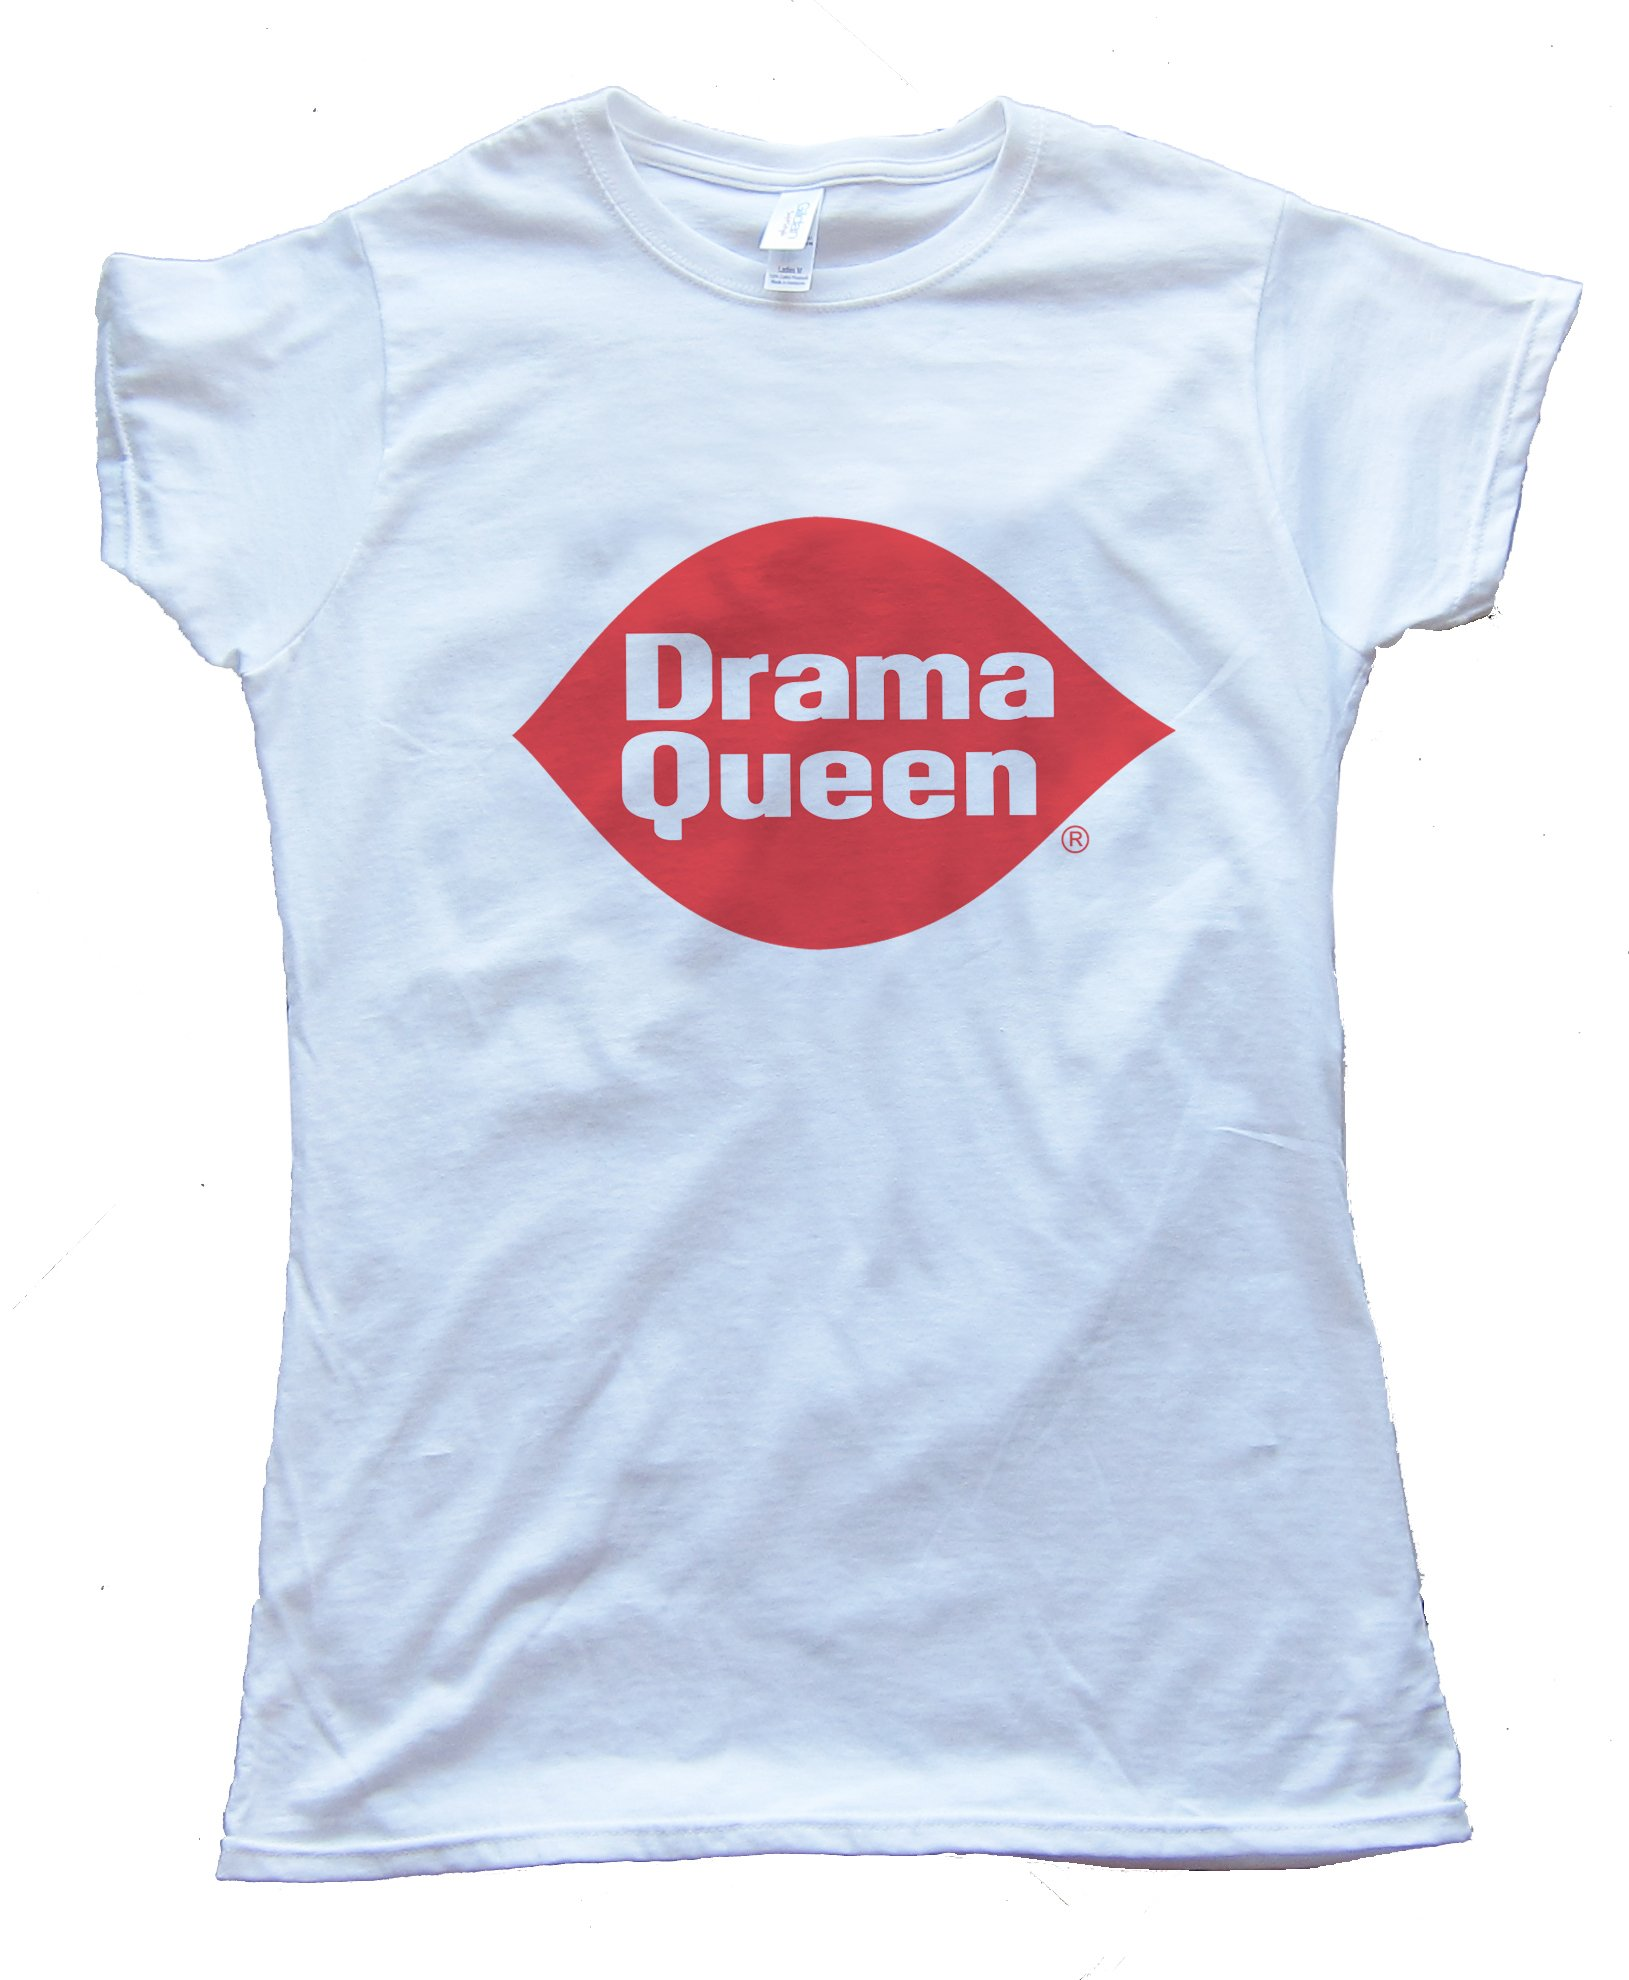 Drama Queen Womens Tee Shirt